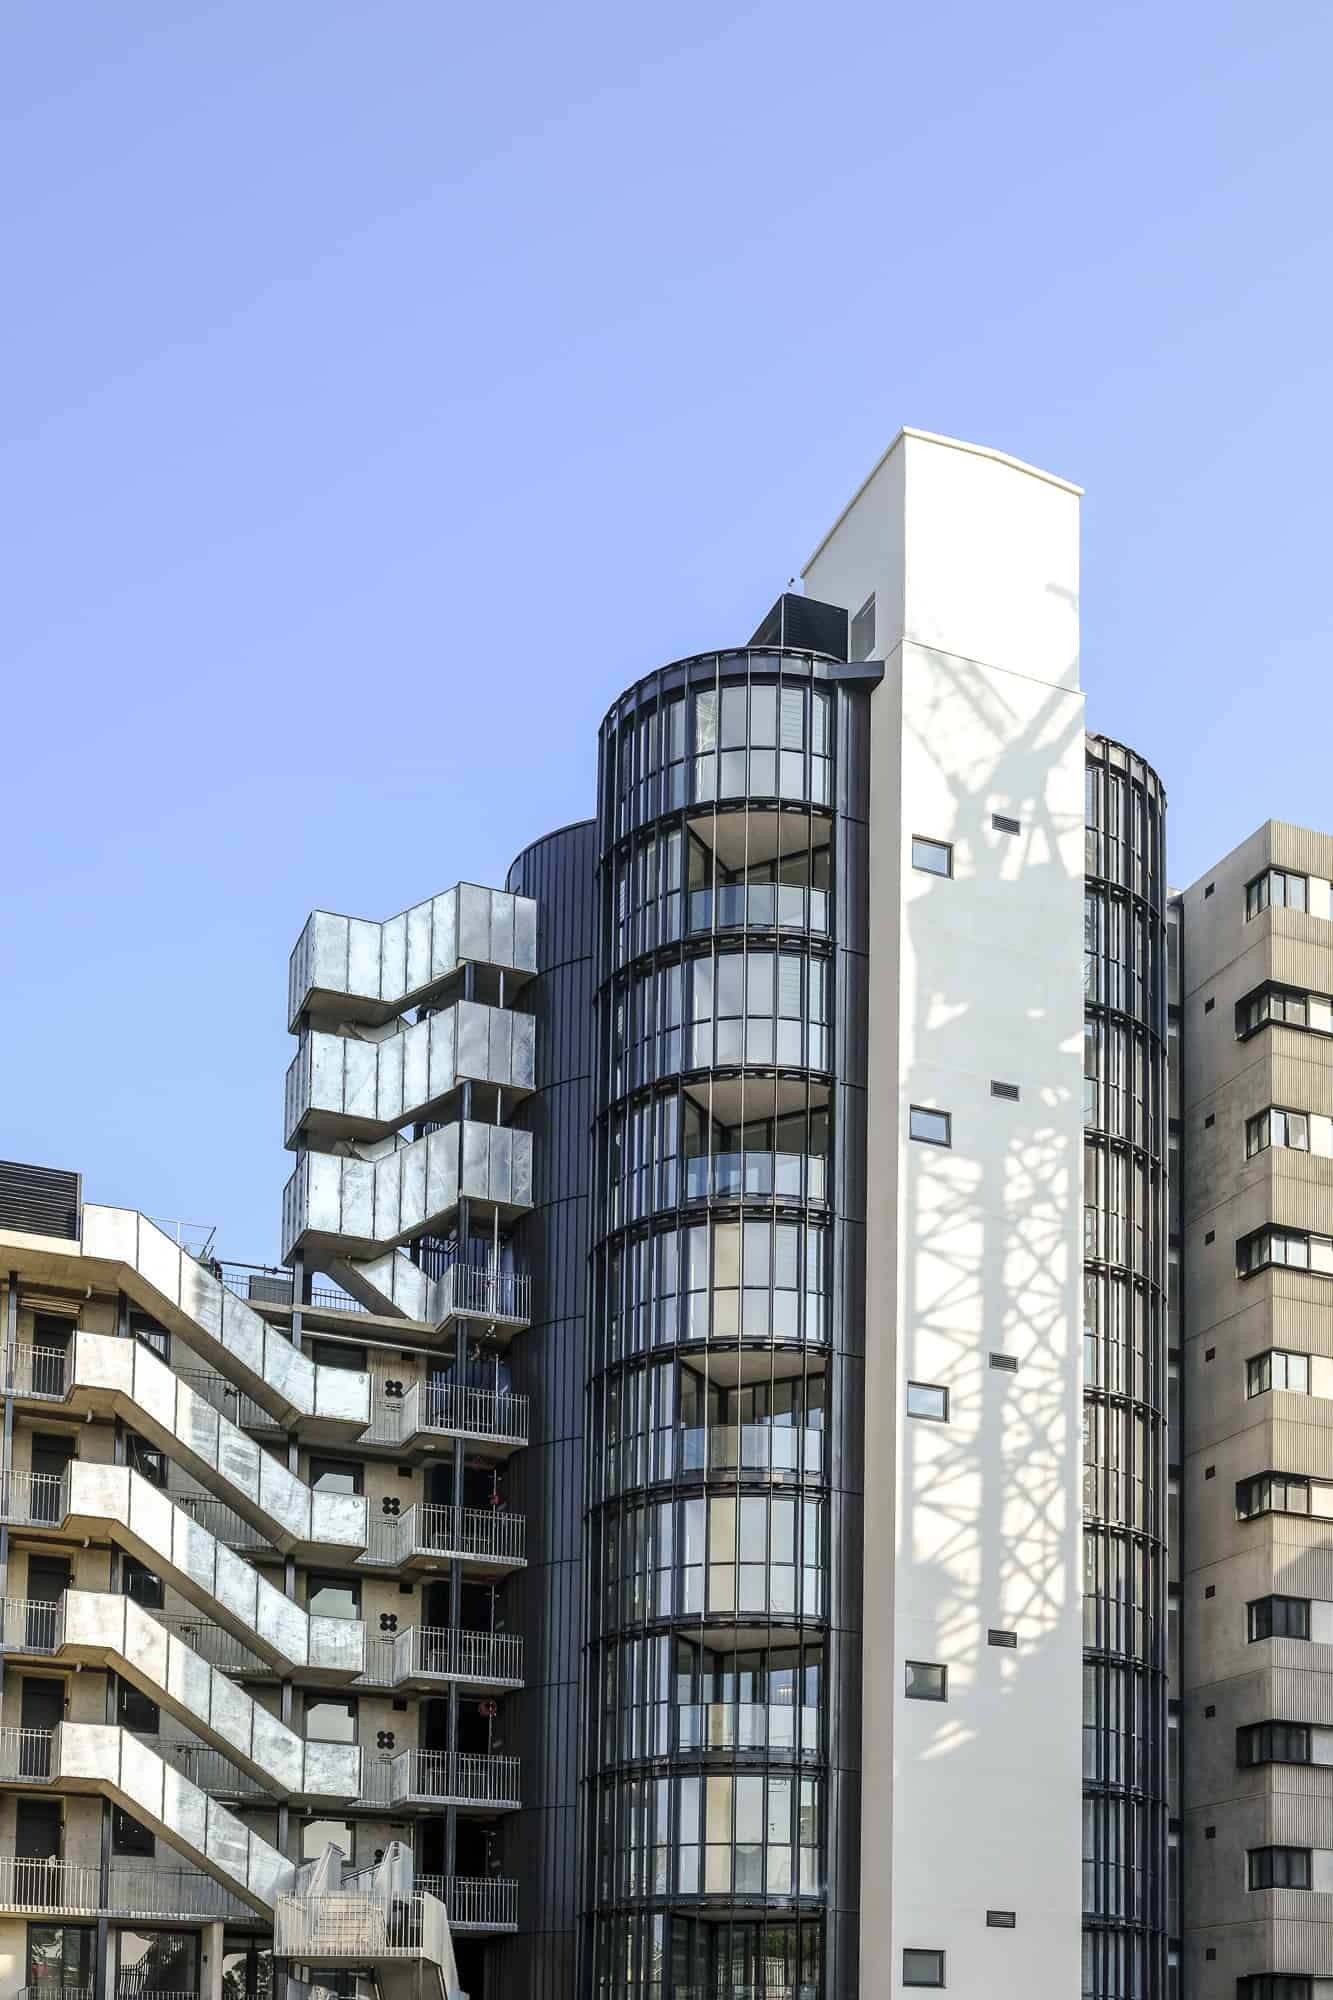 Nailstrip Panels Adds a Futuristic & Modern Touch On Any Building